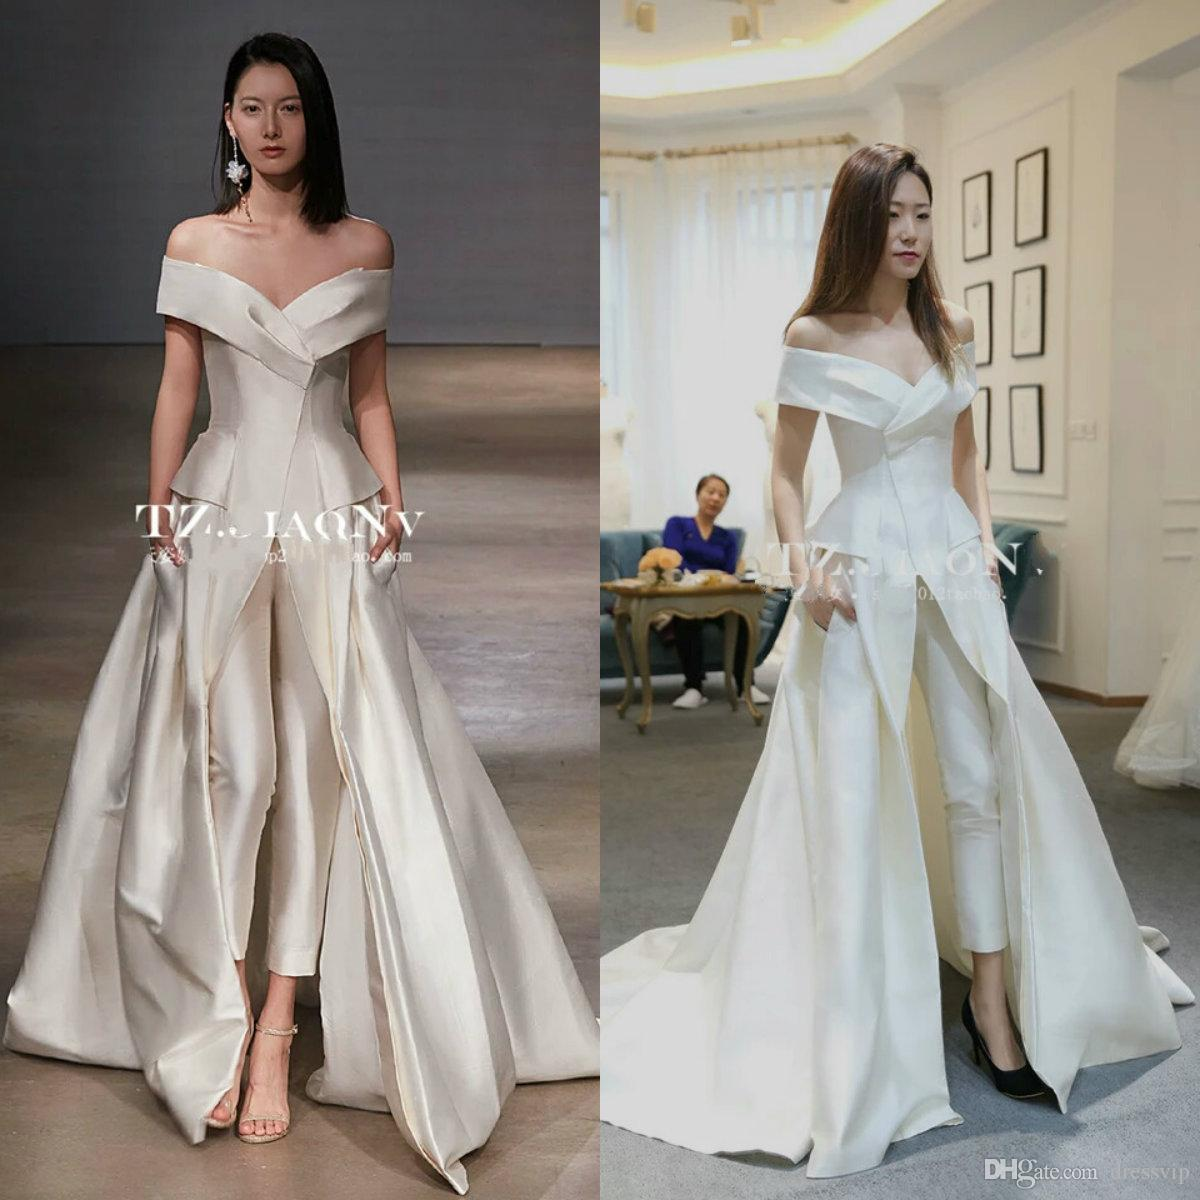 Women Jumpsuit With Long Train White Evening Dresses Off Shoulder Sweep Train Elegant Prom Dress Party Zuhair Murad Dress Vestidos Festa